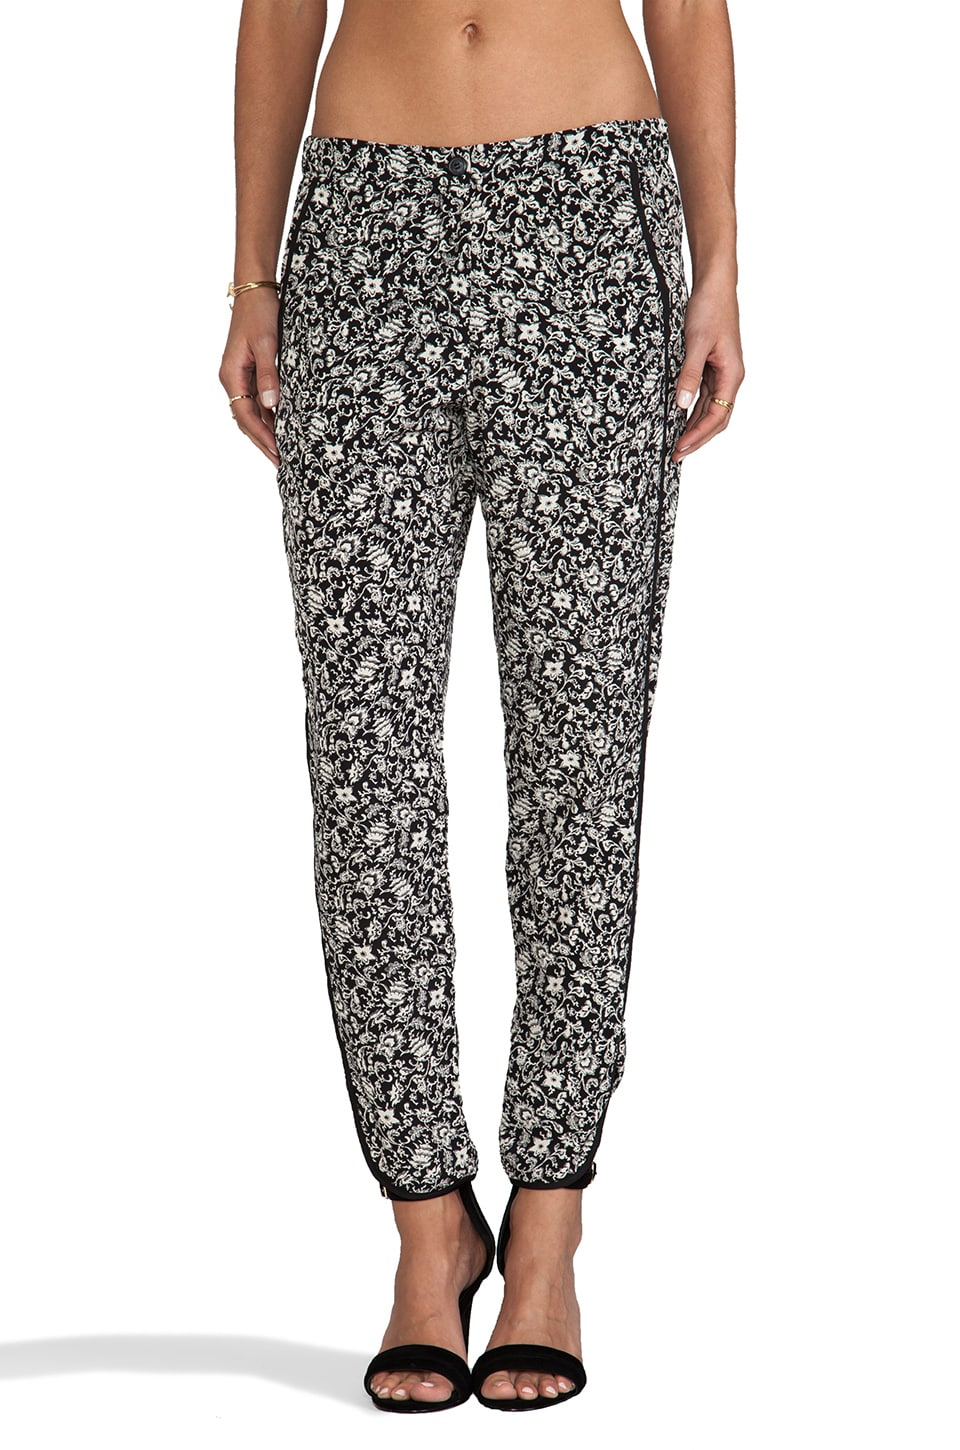 Charles Henry Tuxedo Stripe Pant in Black/White Floral